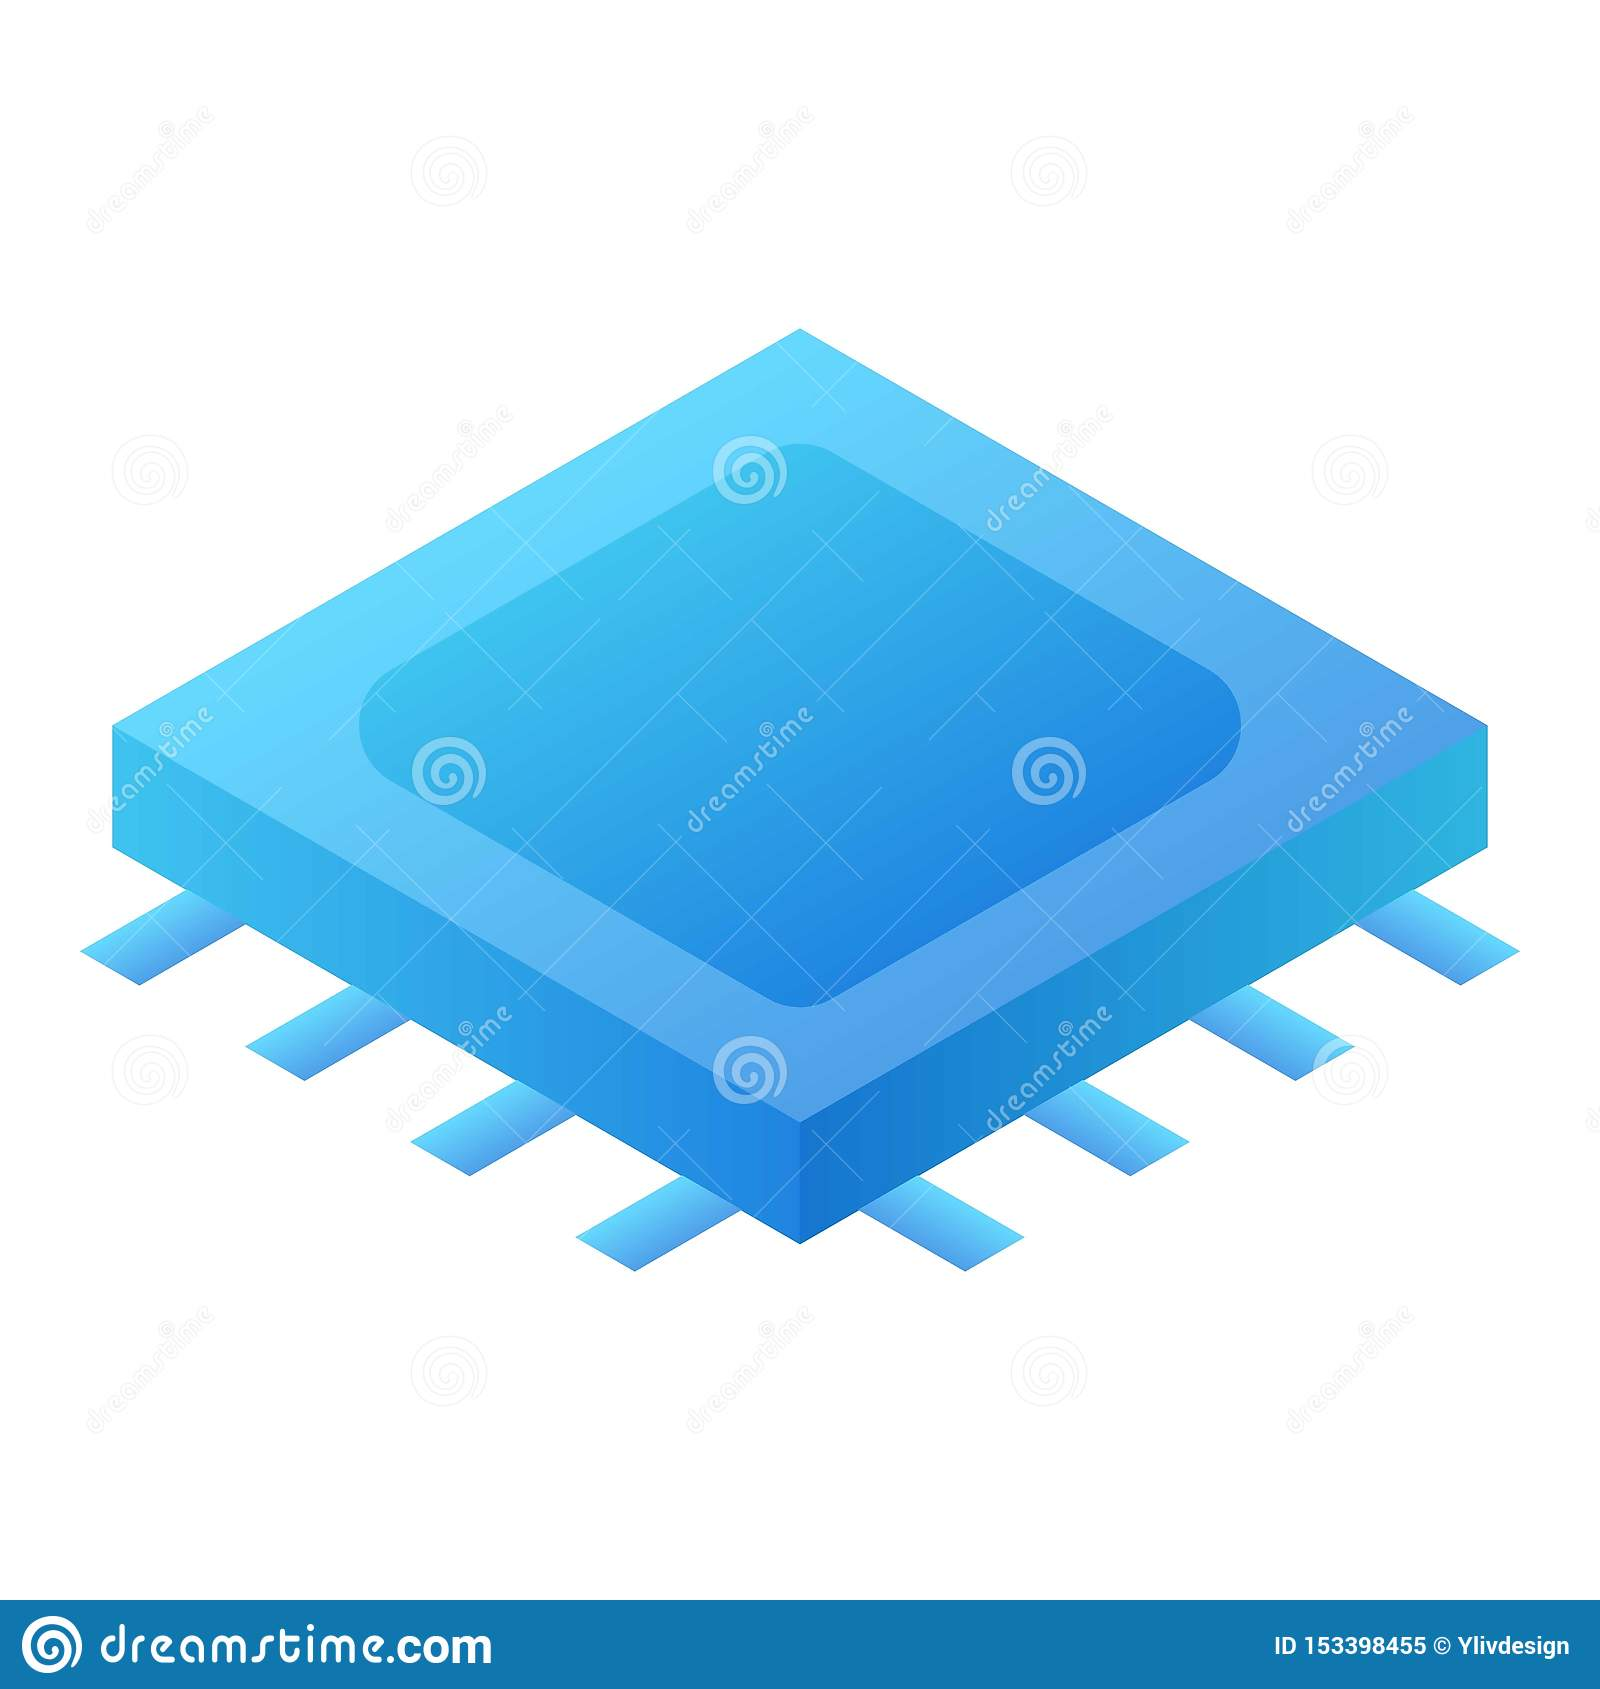 Processor chip icon, isometric style